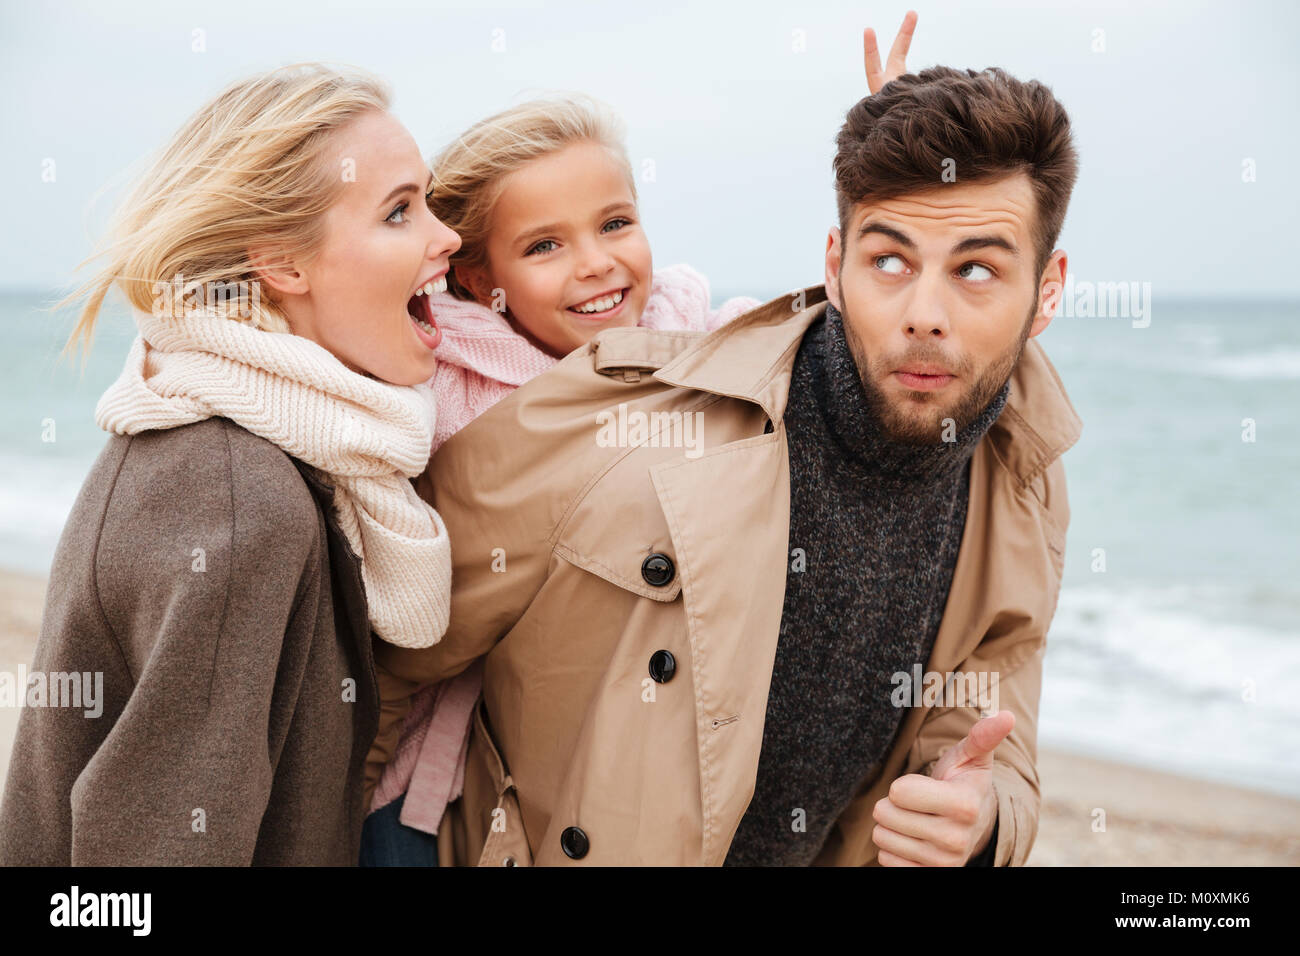 Portrait Of A Funny Family With Little Daughter Having Fun At The Beach Together